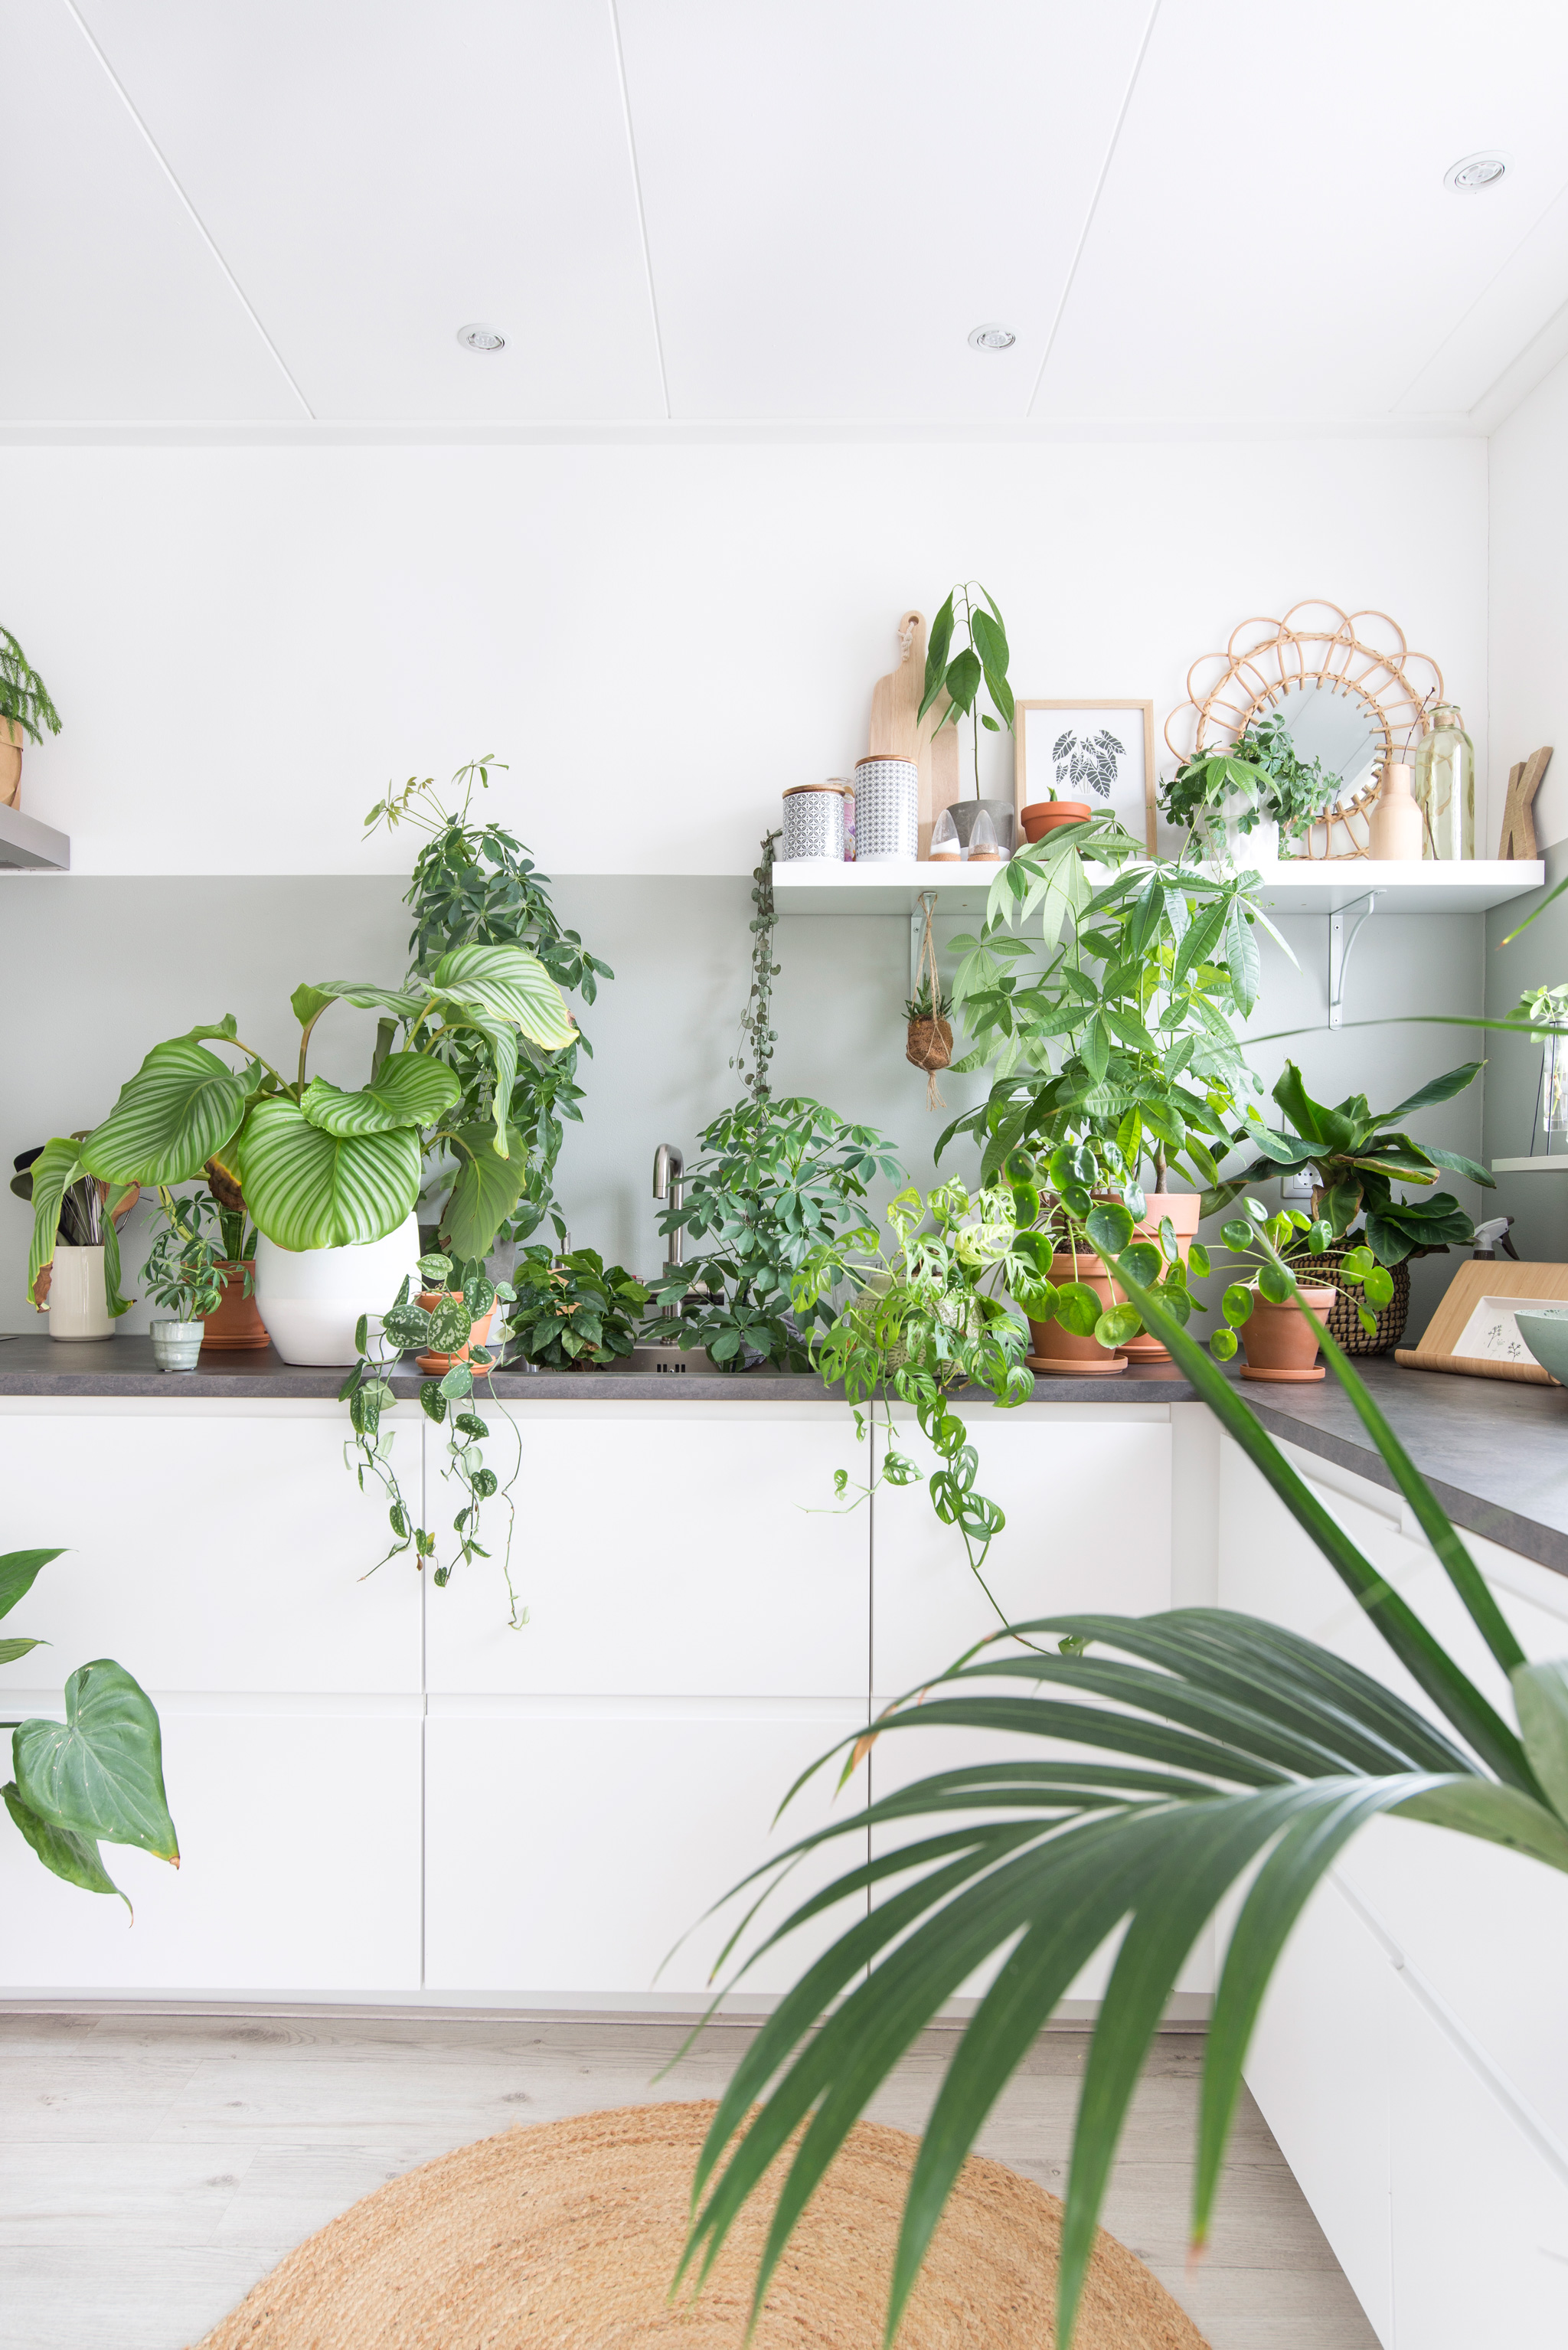 urbanjungle planten in huis groen keuken ikea intratuin plants